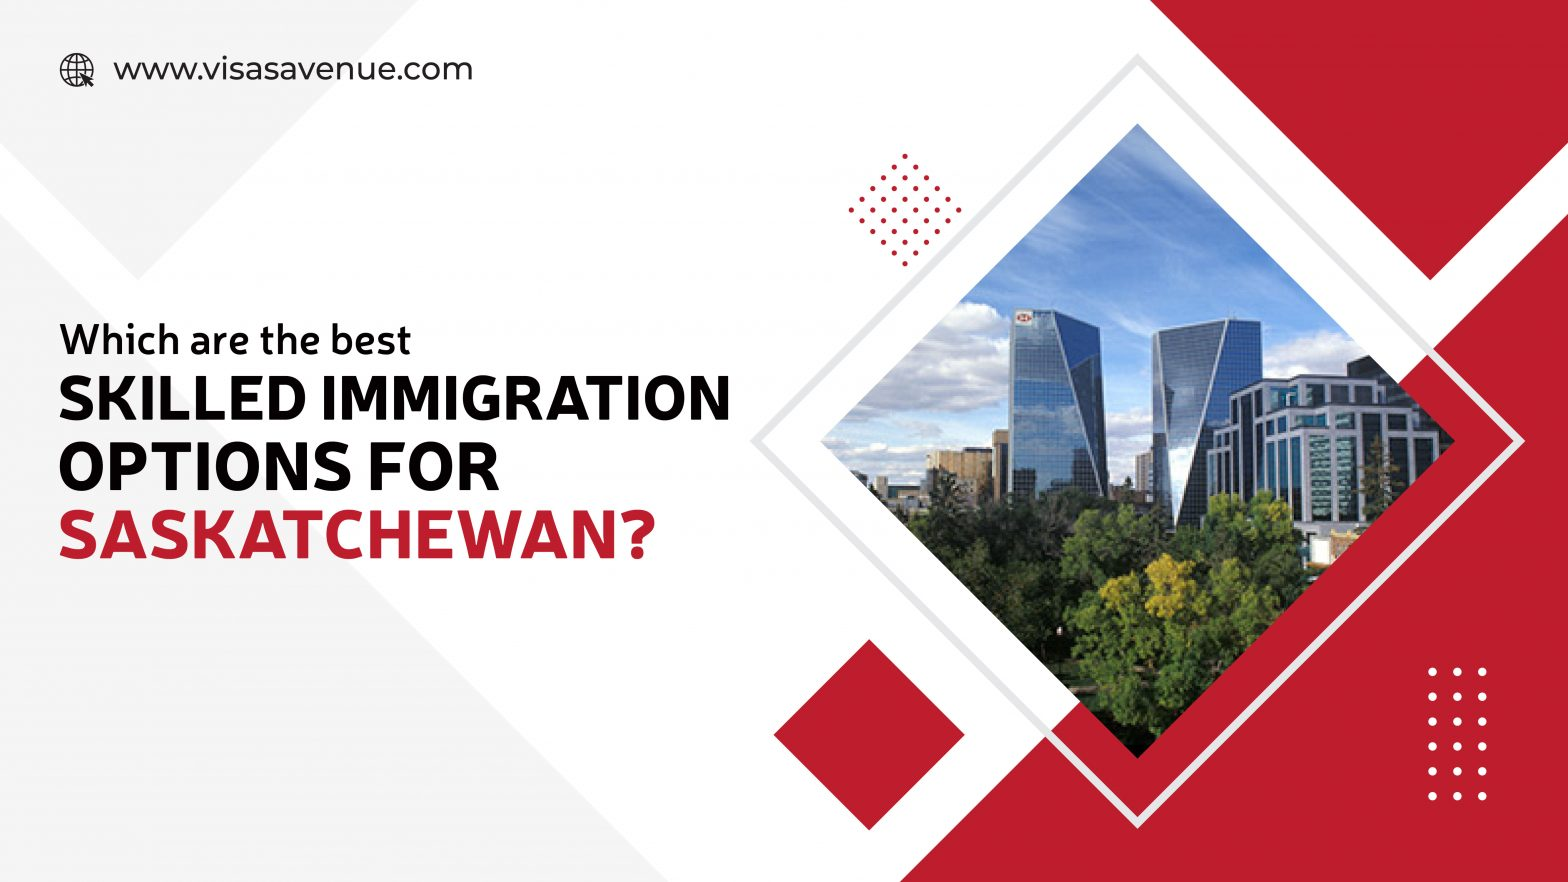 Which are the best Skilled Immigration options for Saskatchewan